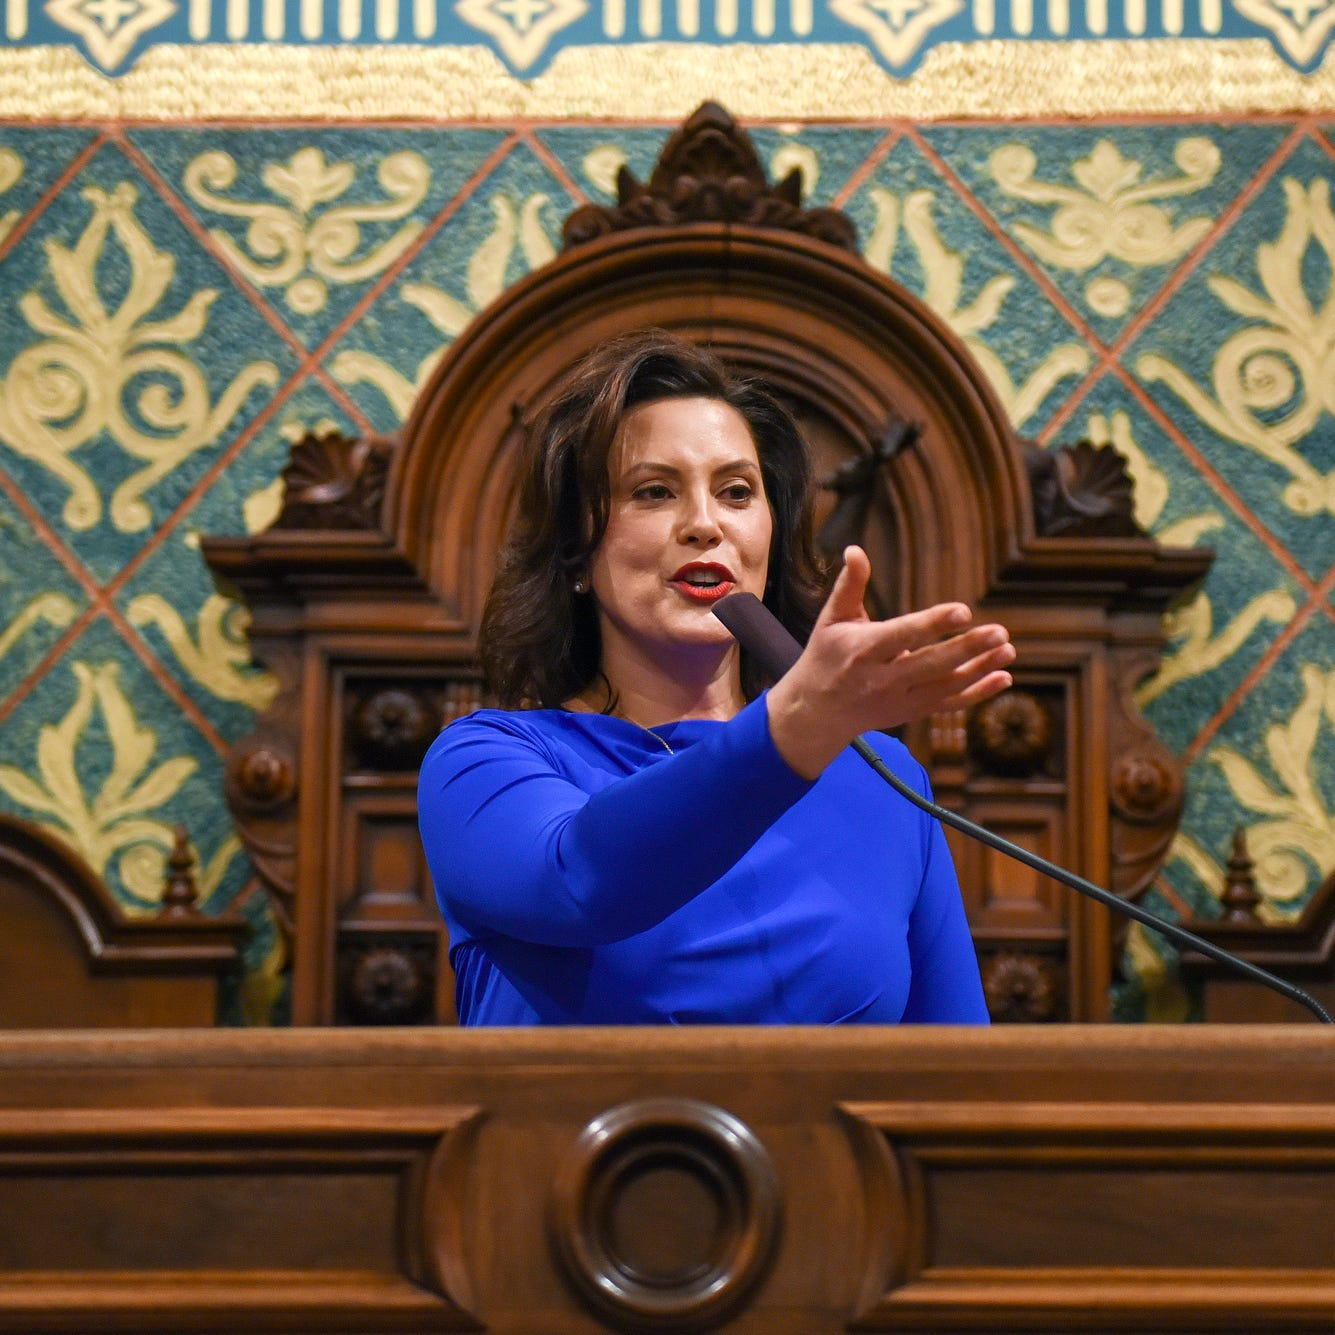 """Five pads from the first State of the Gov State. Gretchen Whitmer """"class ="""" more-section-stories-thumb"""